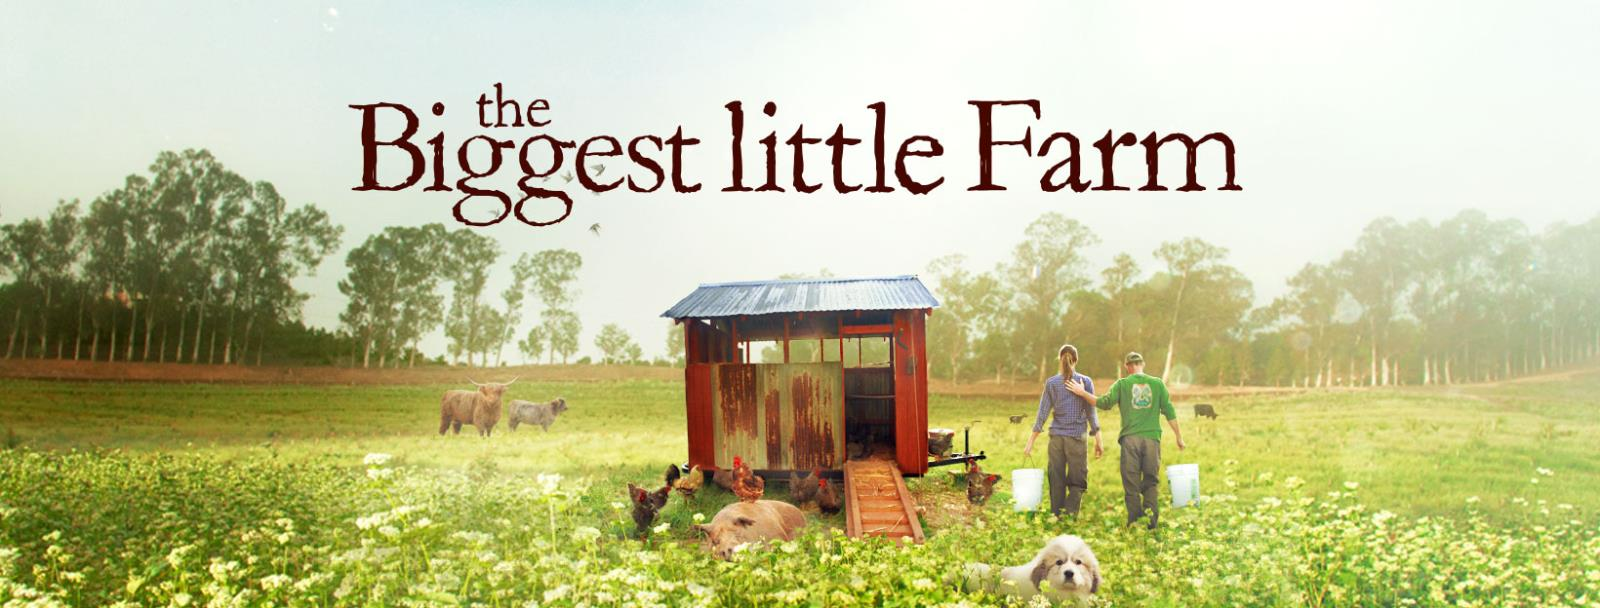 Image of Biggest Little Farm poster